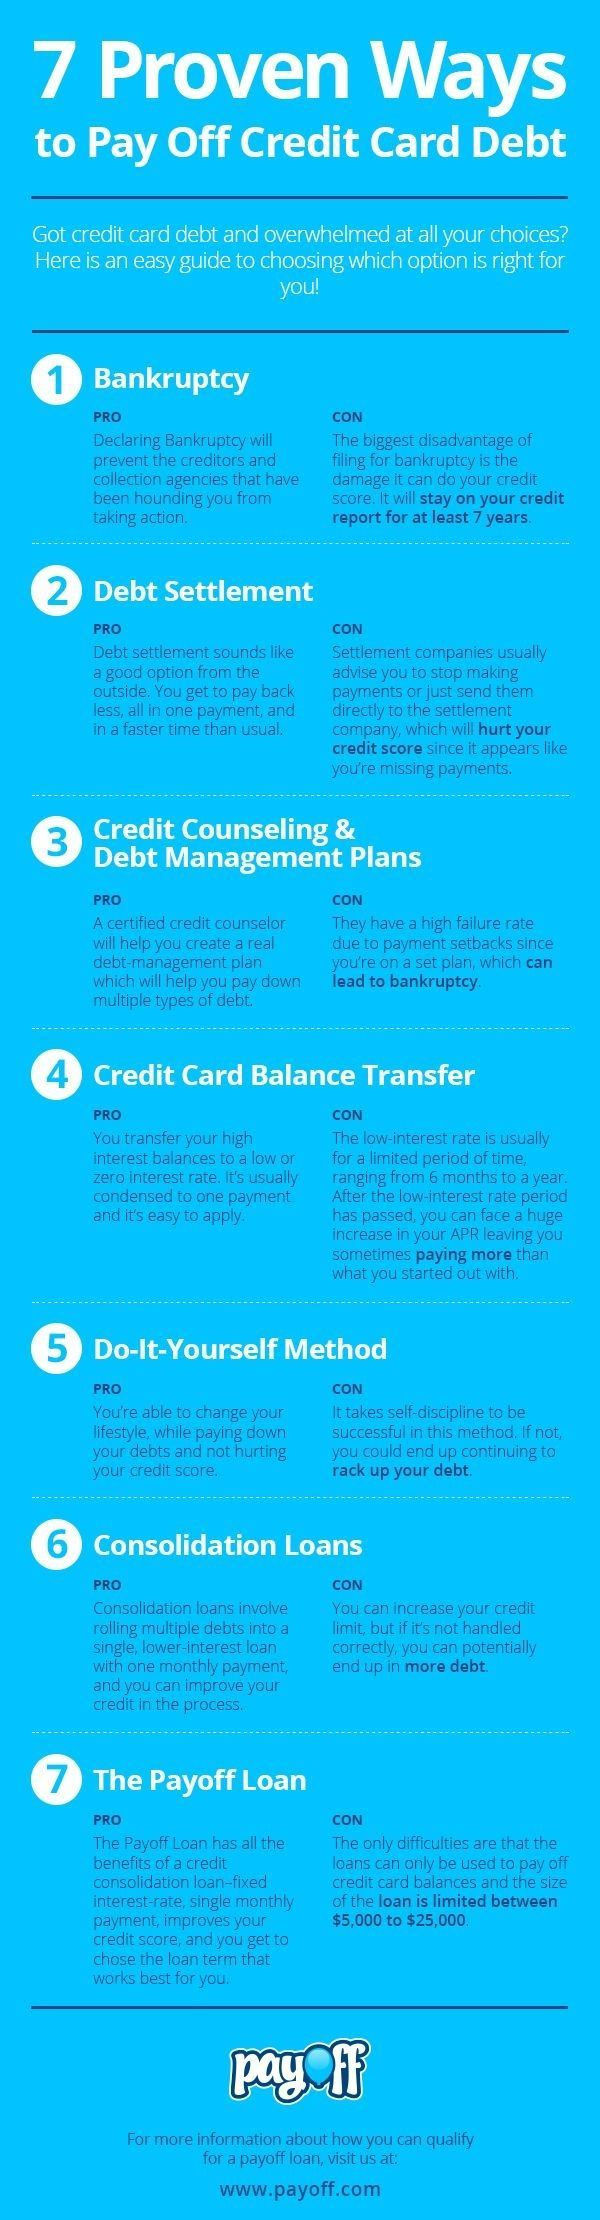 Want money saving tips? Here's one: Let Payoff be your credit card refinancing solution. We can help consolidate your credit card balances and get you on the road to financial security.  http://www.payoff.com/?utm_source=pinterest&utm_medium=cpc&utm_campaign=2015_04_SOC_PIN&utm_content=9.37P